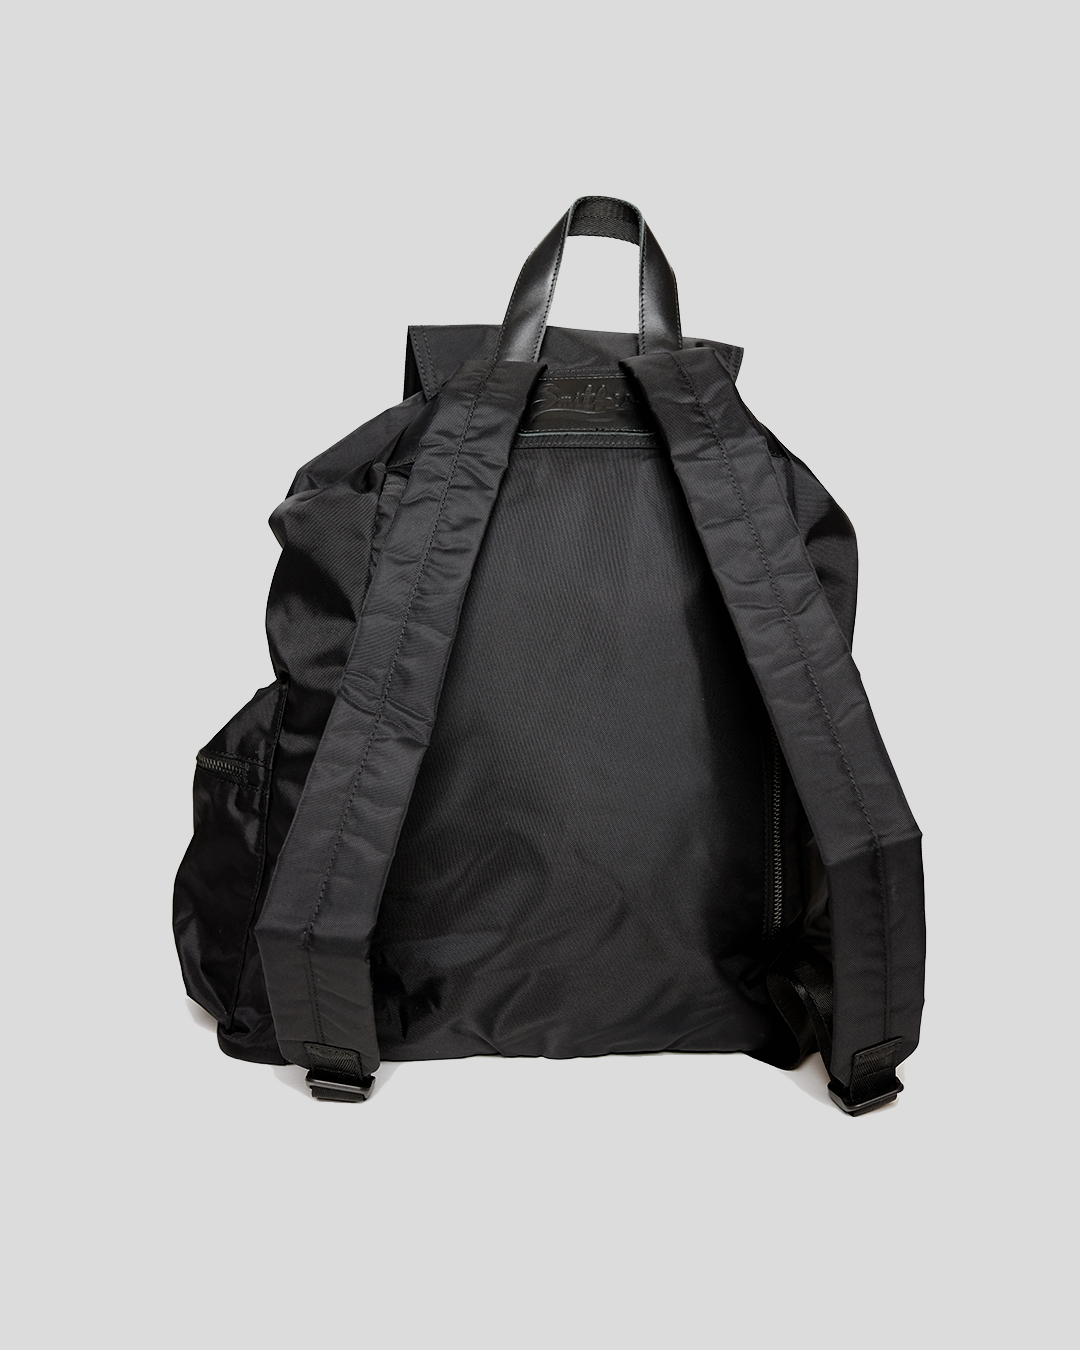 photo-3-BLACK-NYLON-RIPSTOP-BACKPACK-URBANE-MUSE-CHRIS-SMITH